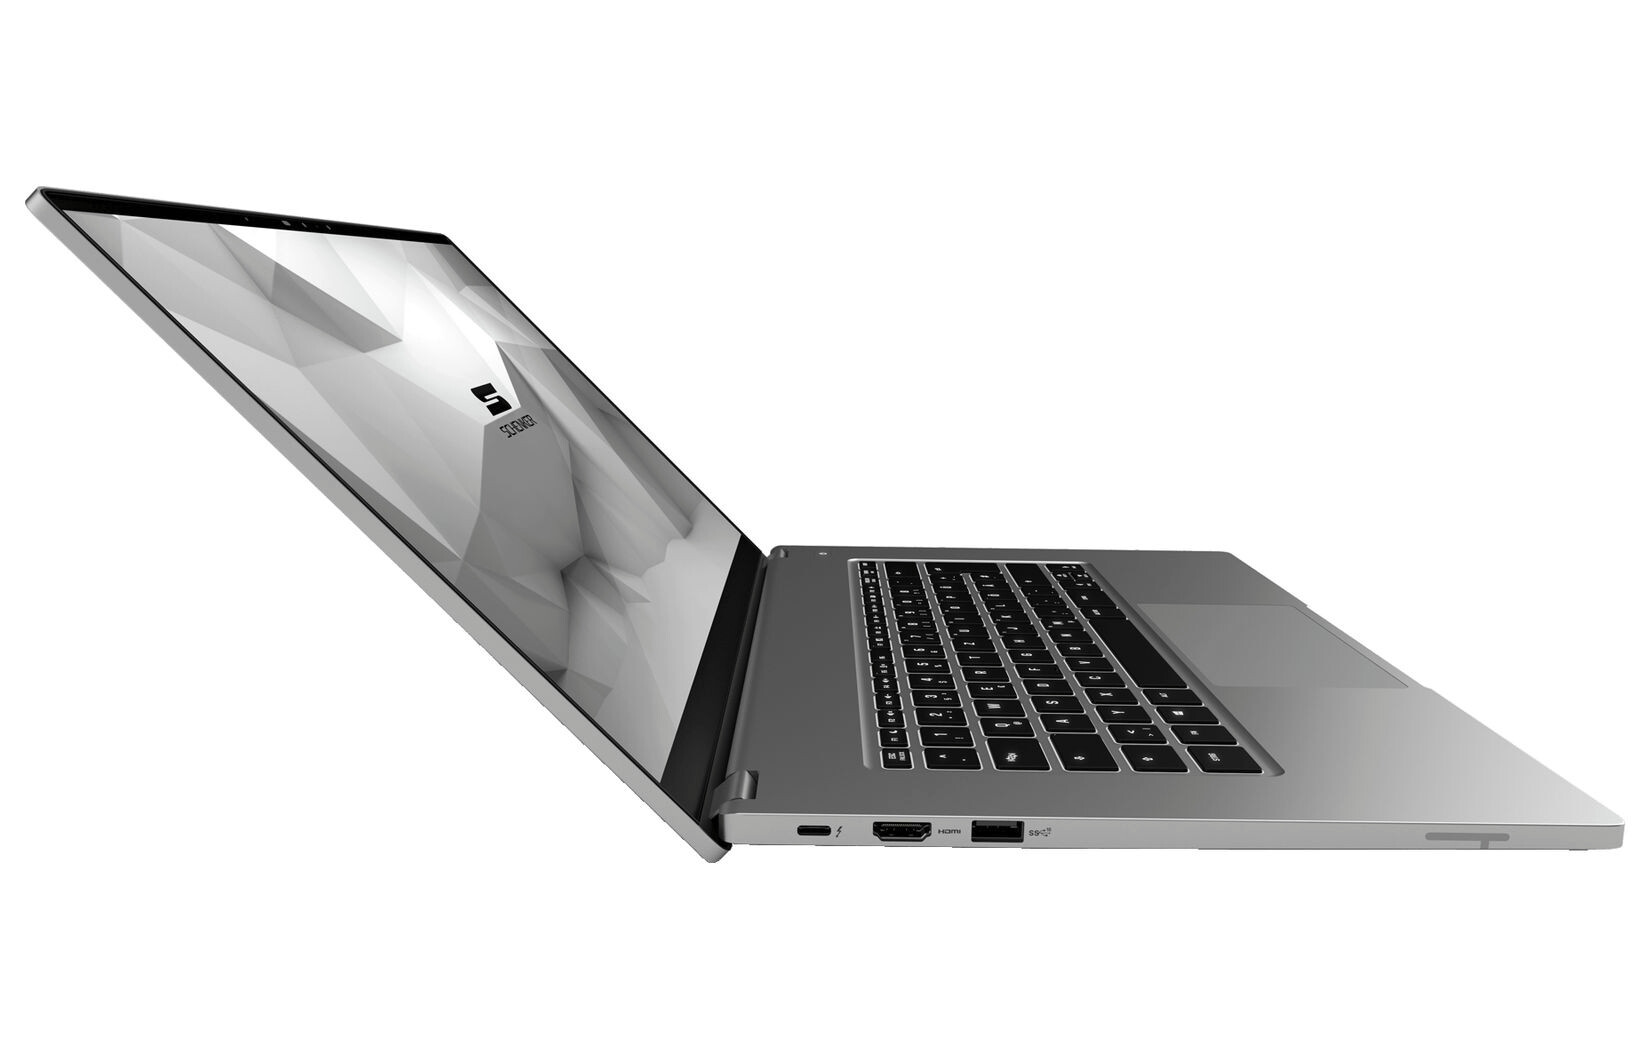 Schenker Announces VISION 15 Notebook: Intel Core i7-1165G7 Tiger Lake CPU,  Touch Display | TechPowerUp Forums